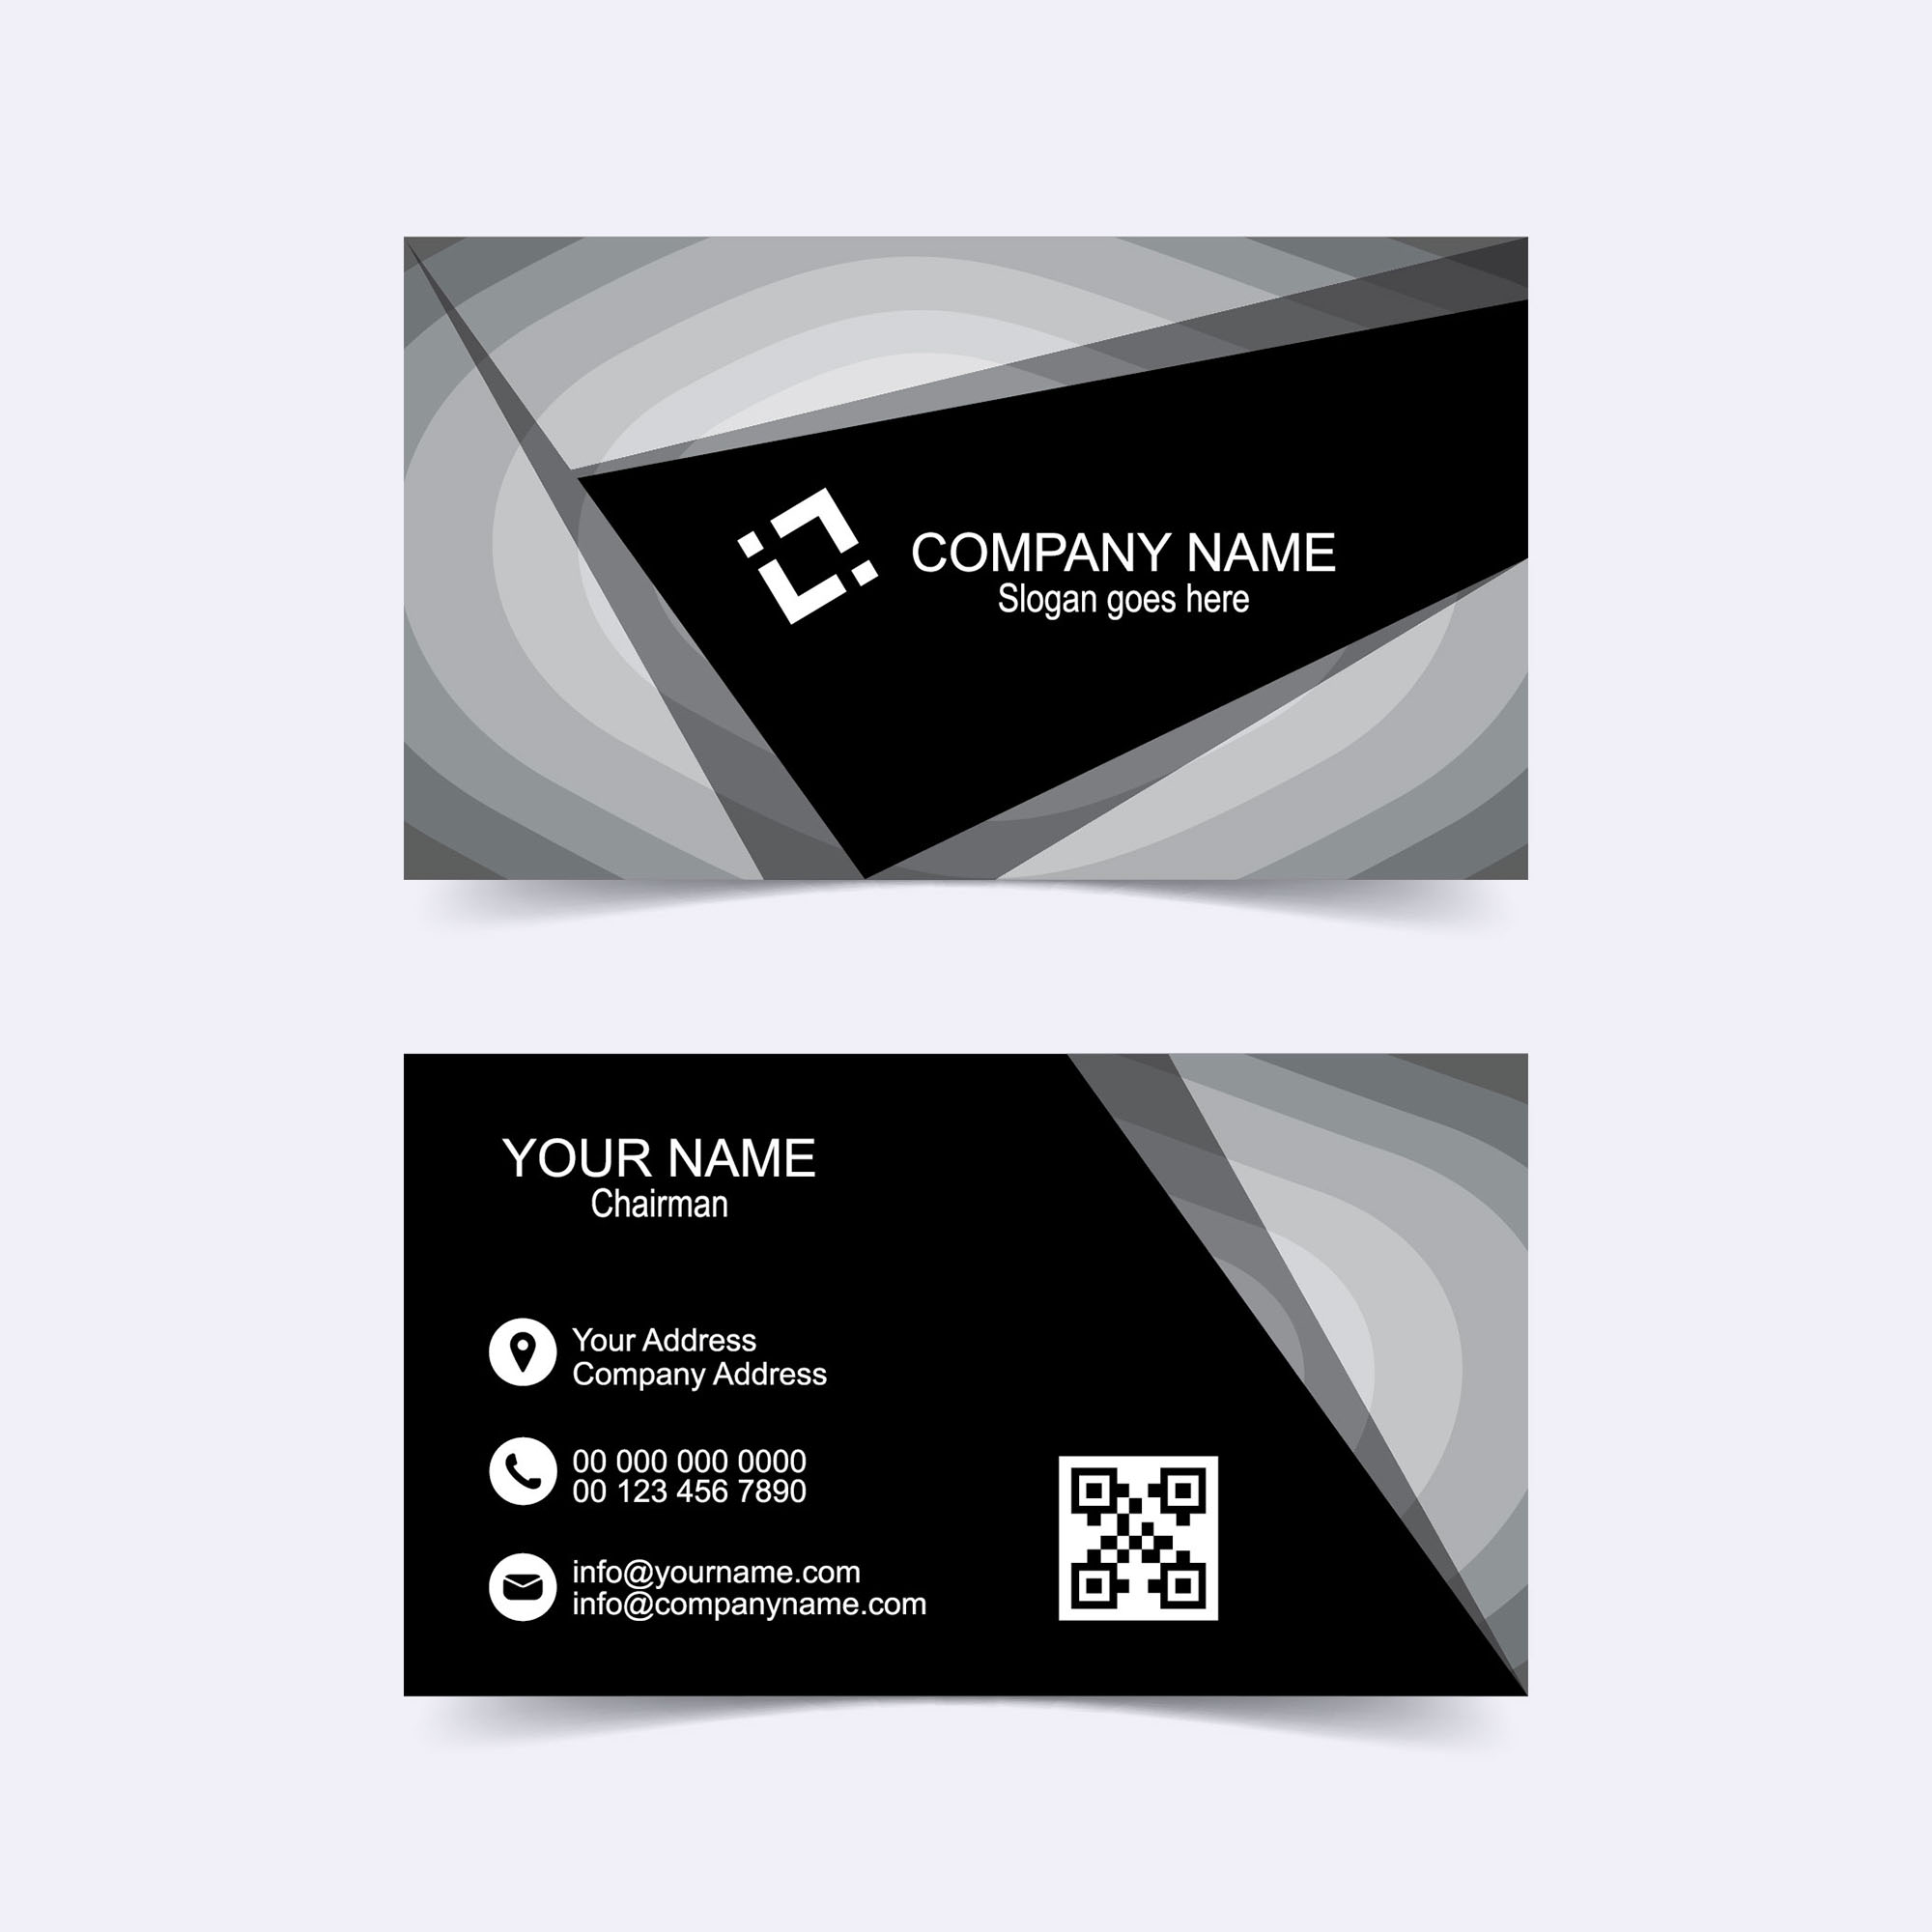 Abstract triangle business card template free download wisxi business card business cards business card design business card template design templates wajeb Choice Image